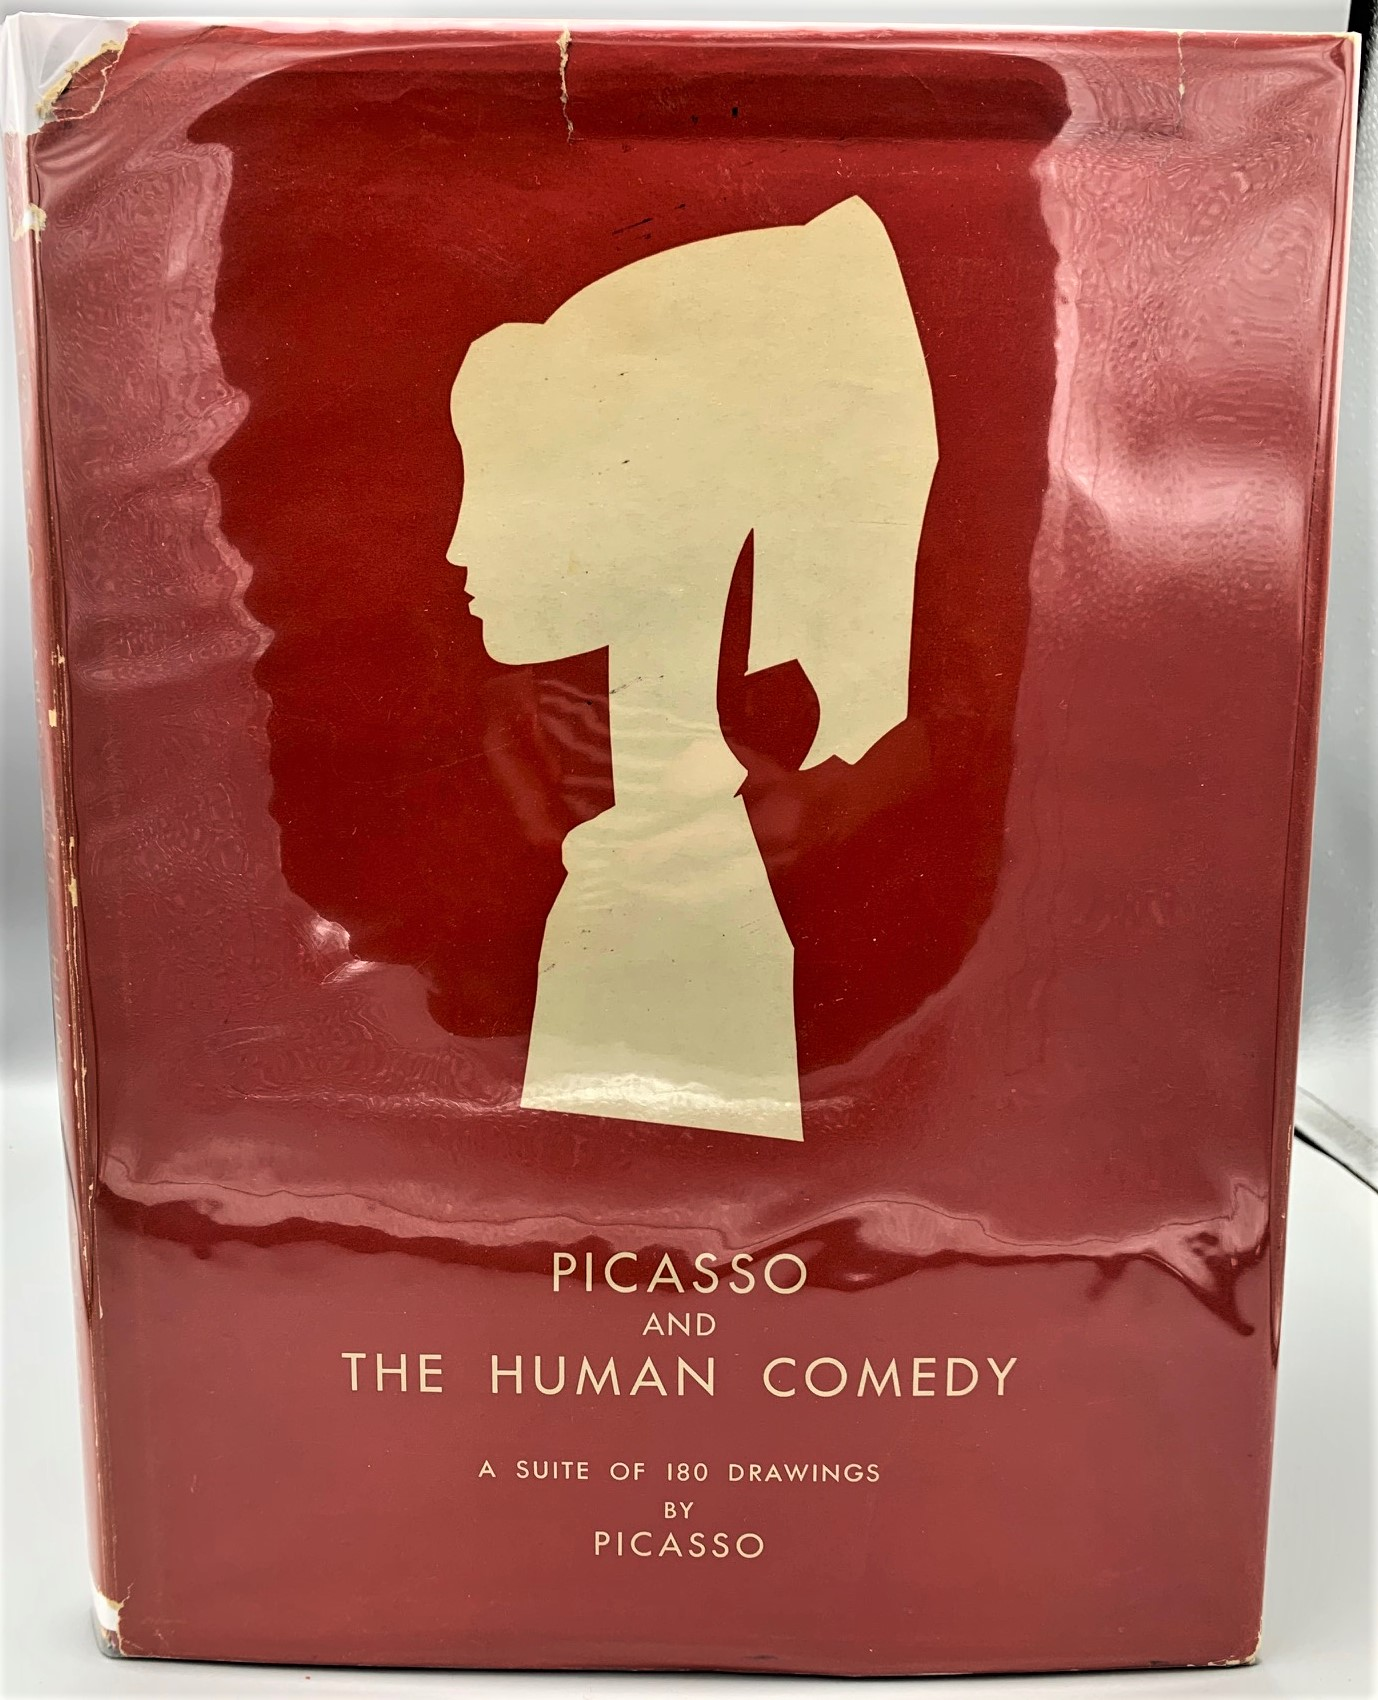 PICASSO AND THE HUMAN COMEDY, by Picasso - 1954